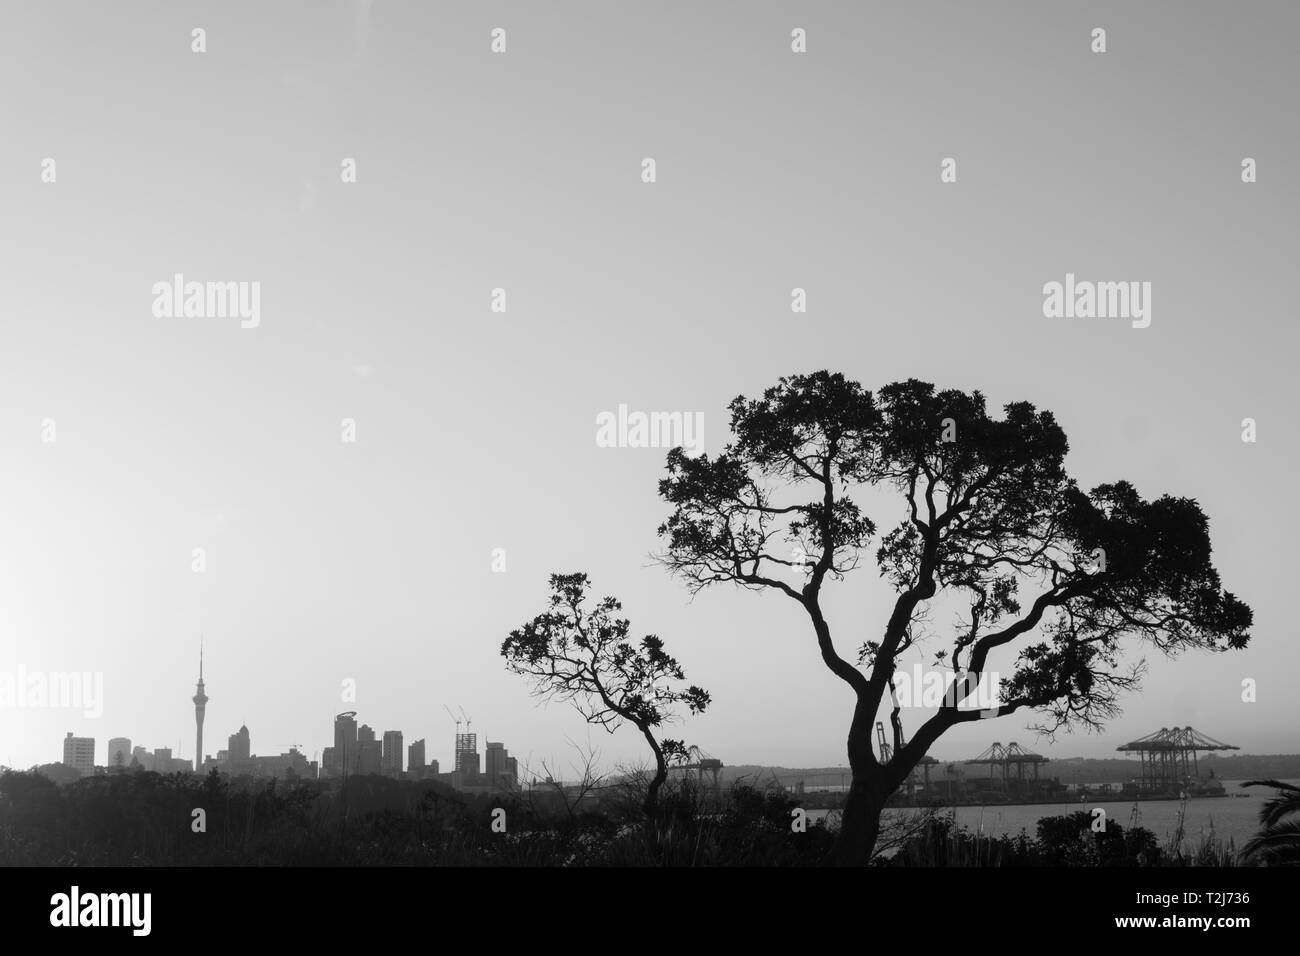 Auckland, New Zealand. View of the central business district at sunset - Stock Image